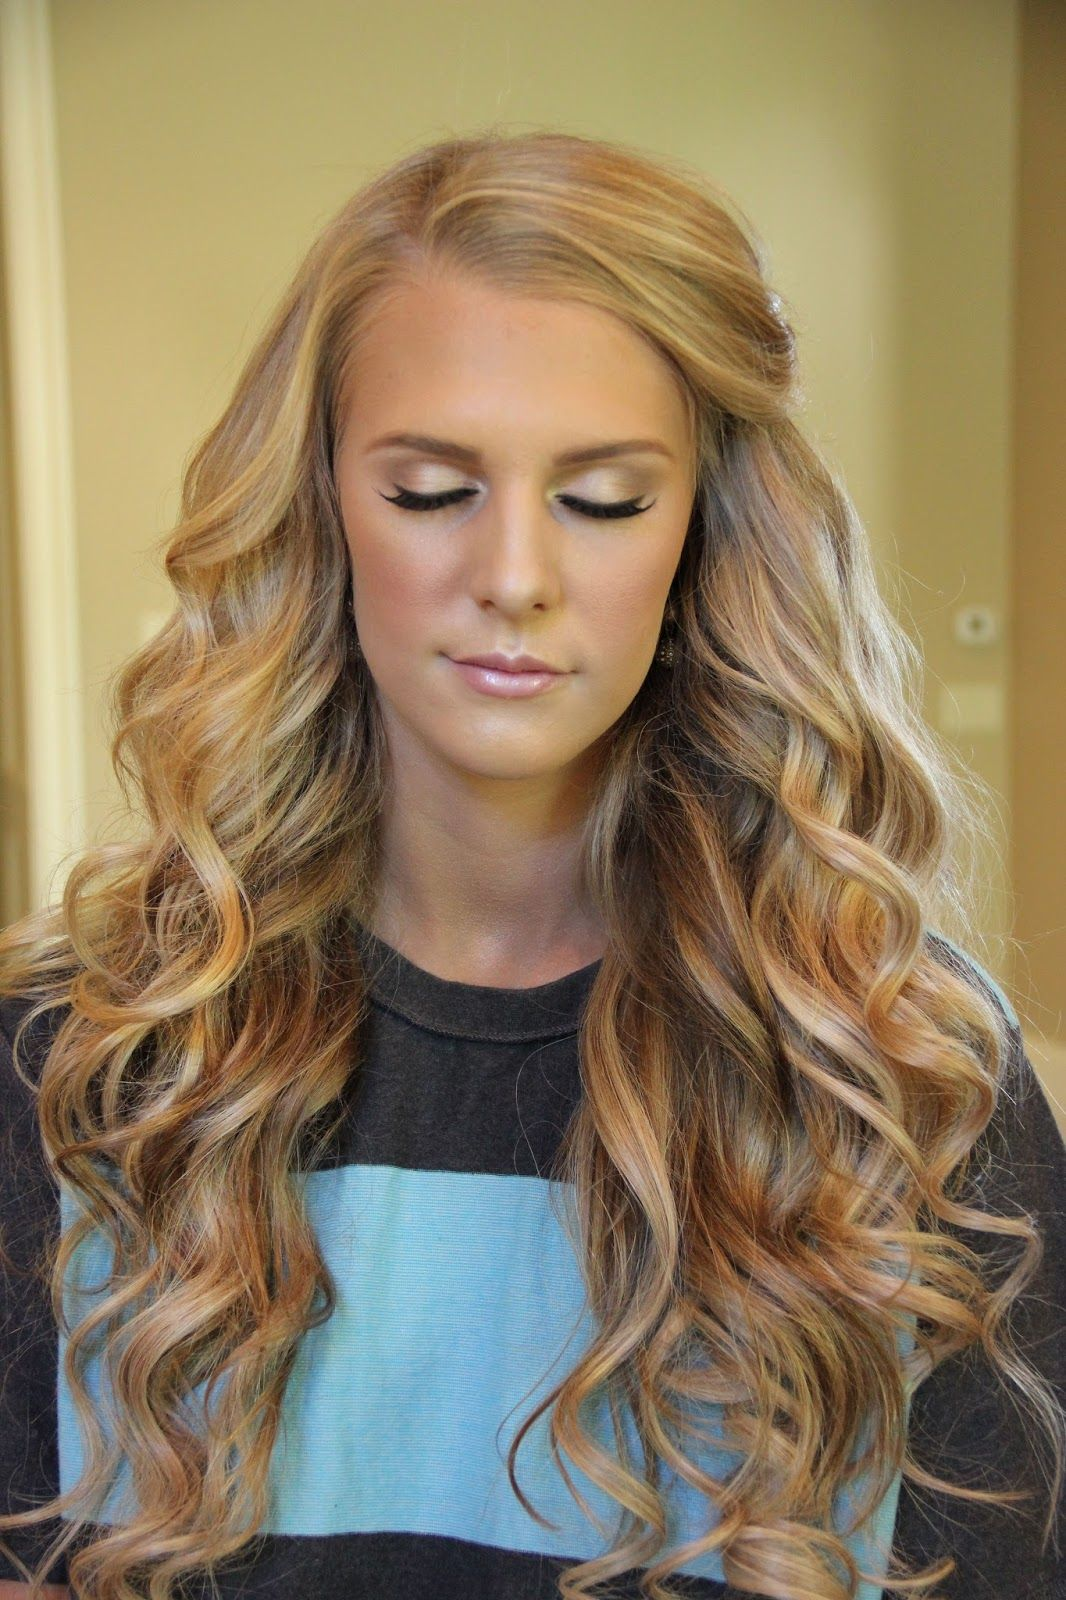 big, bouncy curls & a dirty blonde hair colour and love the fresh